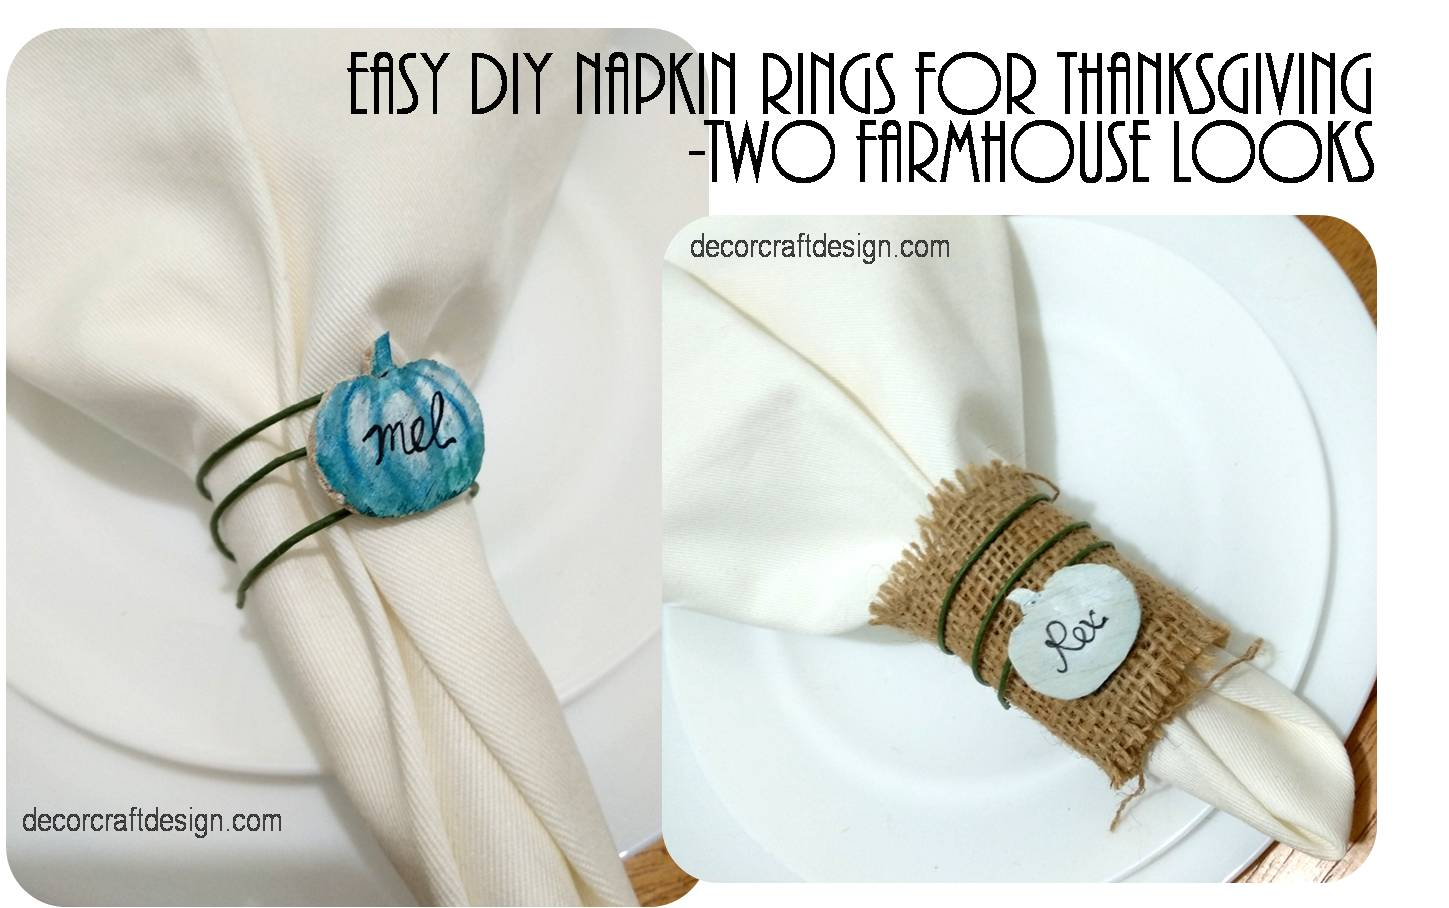 Easy Diy Napkin Rings For Thanksgiving Two Farmhouse Looks Decor Craft Design